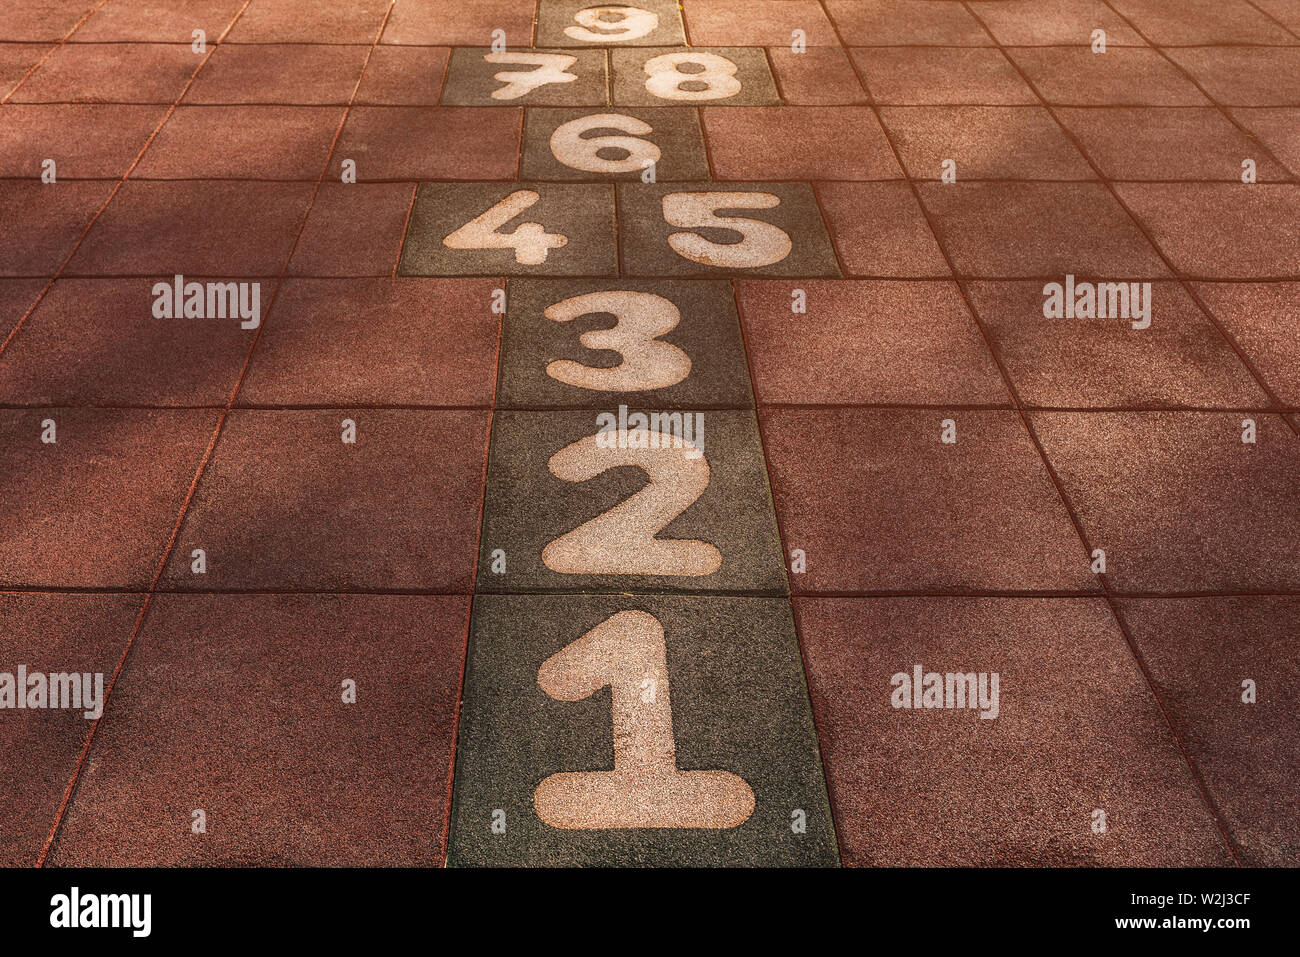 Hopscotch game on outdoor playground for children in diminishing perspective Stock Photo